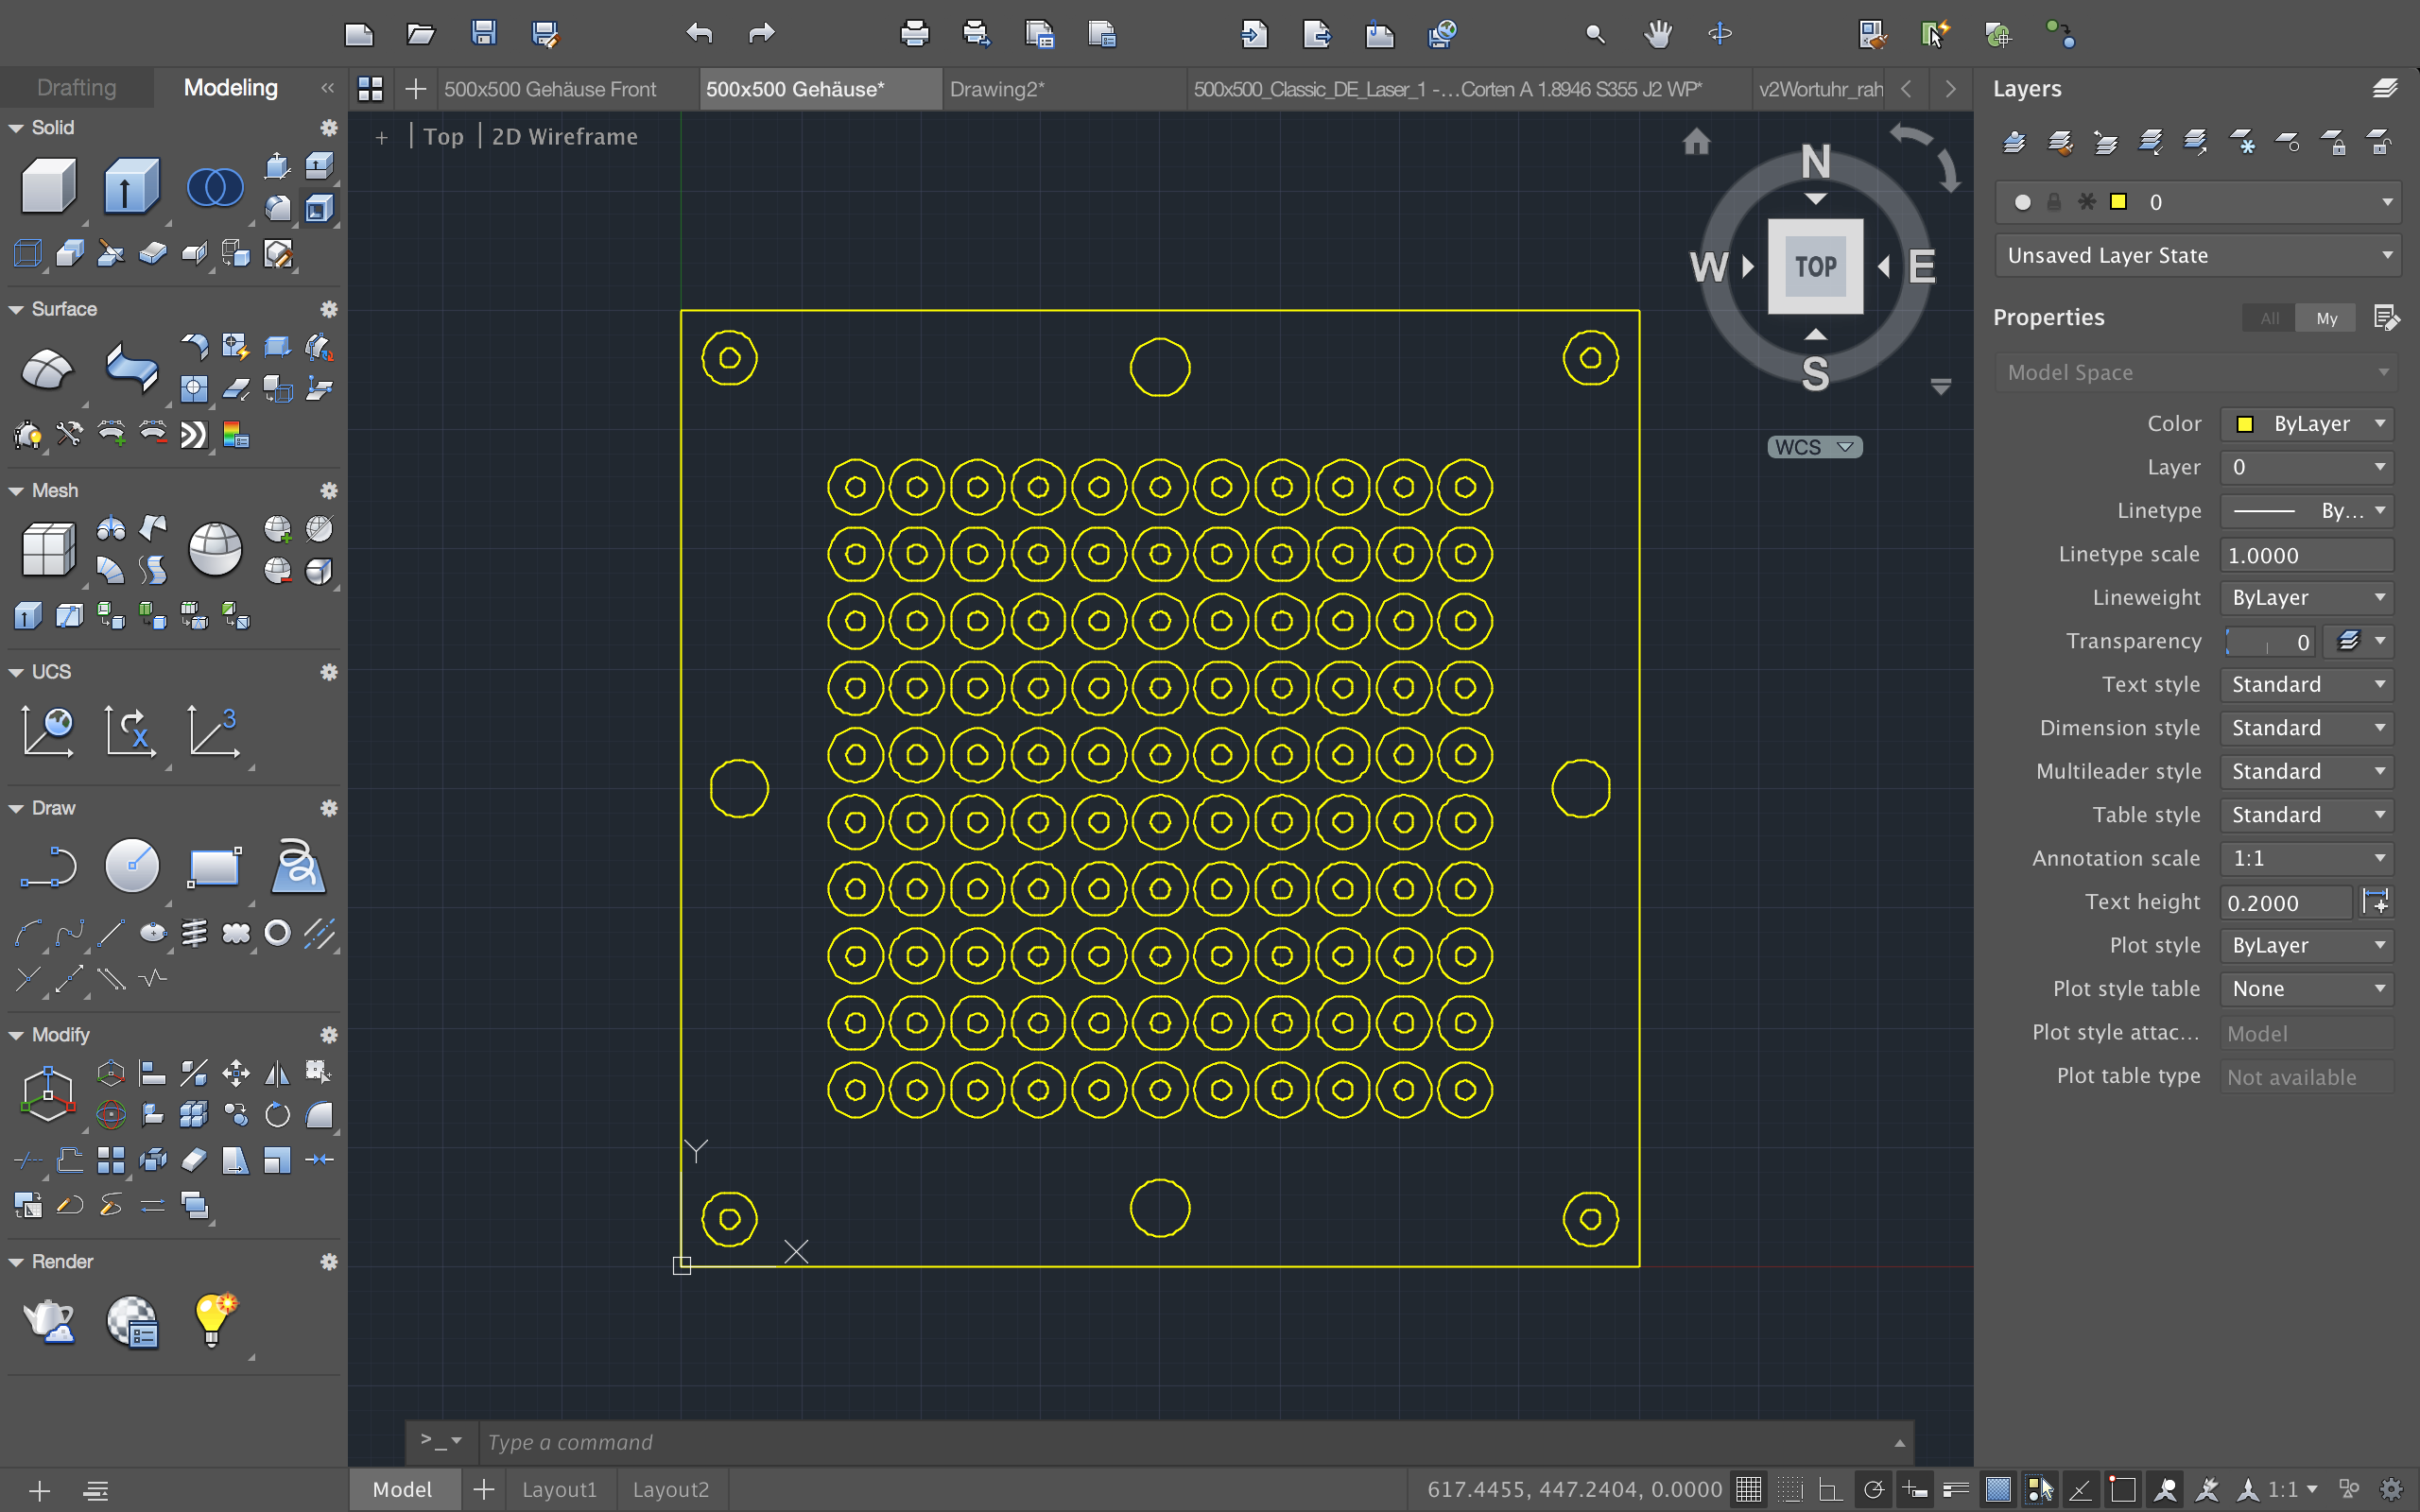 Solved: Convert Wireframe to 3D Solid Model - Autodesk